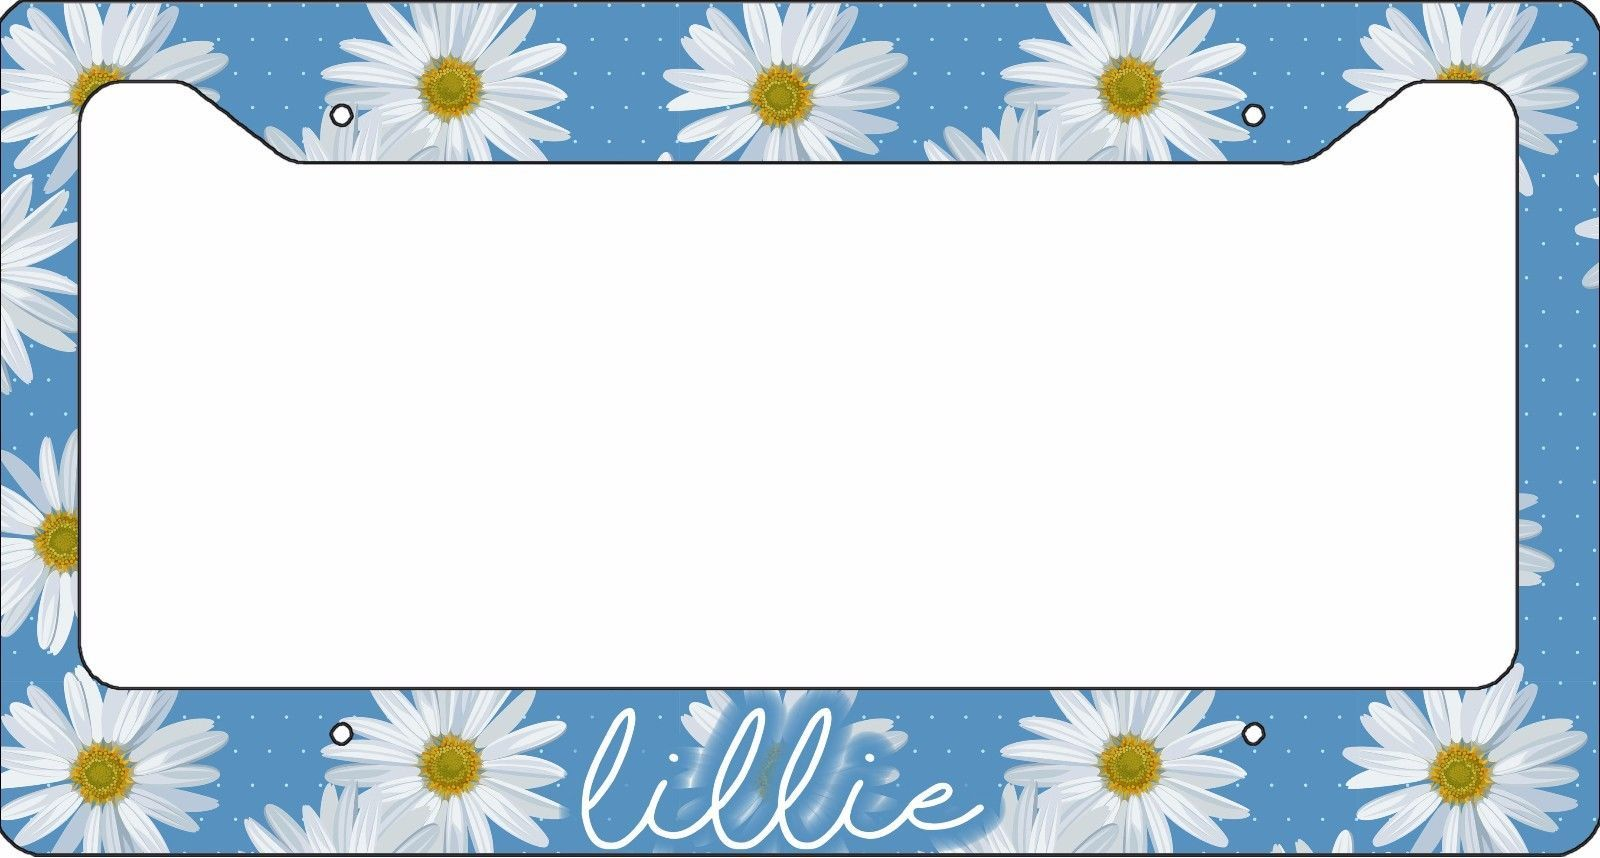 PERSONALIZED LICENSE PLATE FRAME CUSTOM CAR TAG BLUE WHITE DAISY FLOWERS